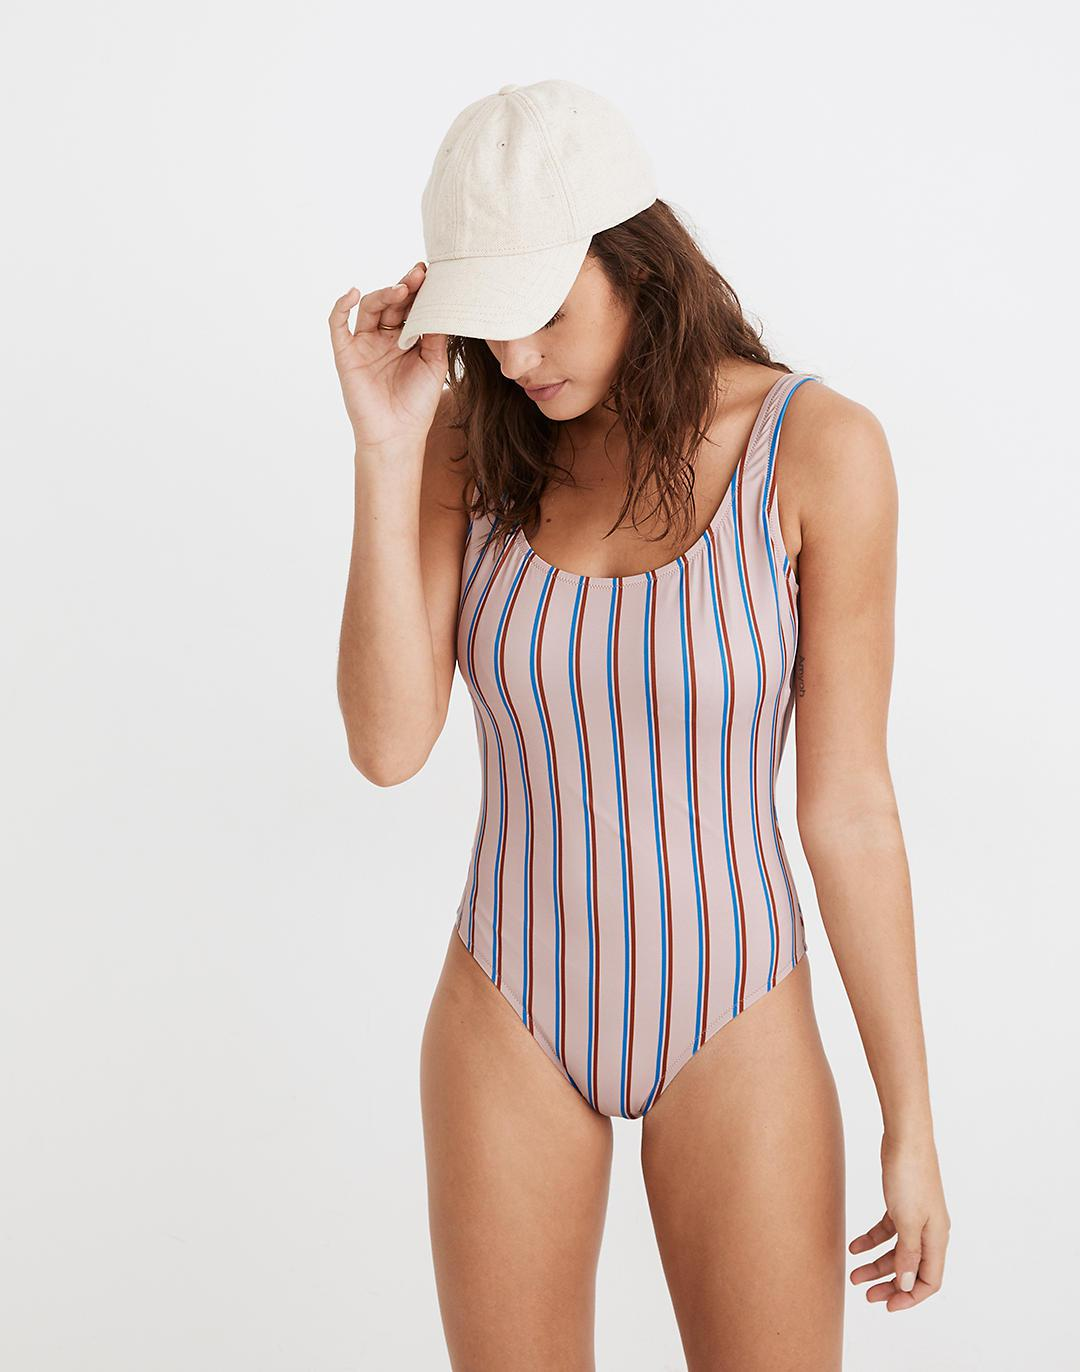 Madewell Second Wave Tank One-Piece Swimsuit in Paseo Stripe